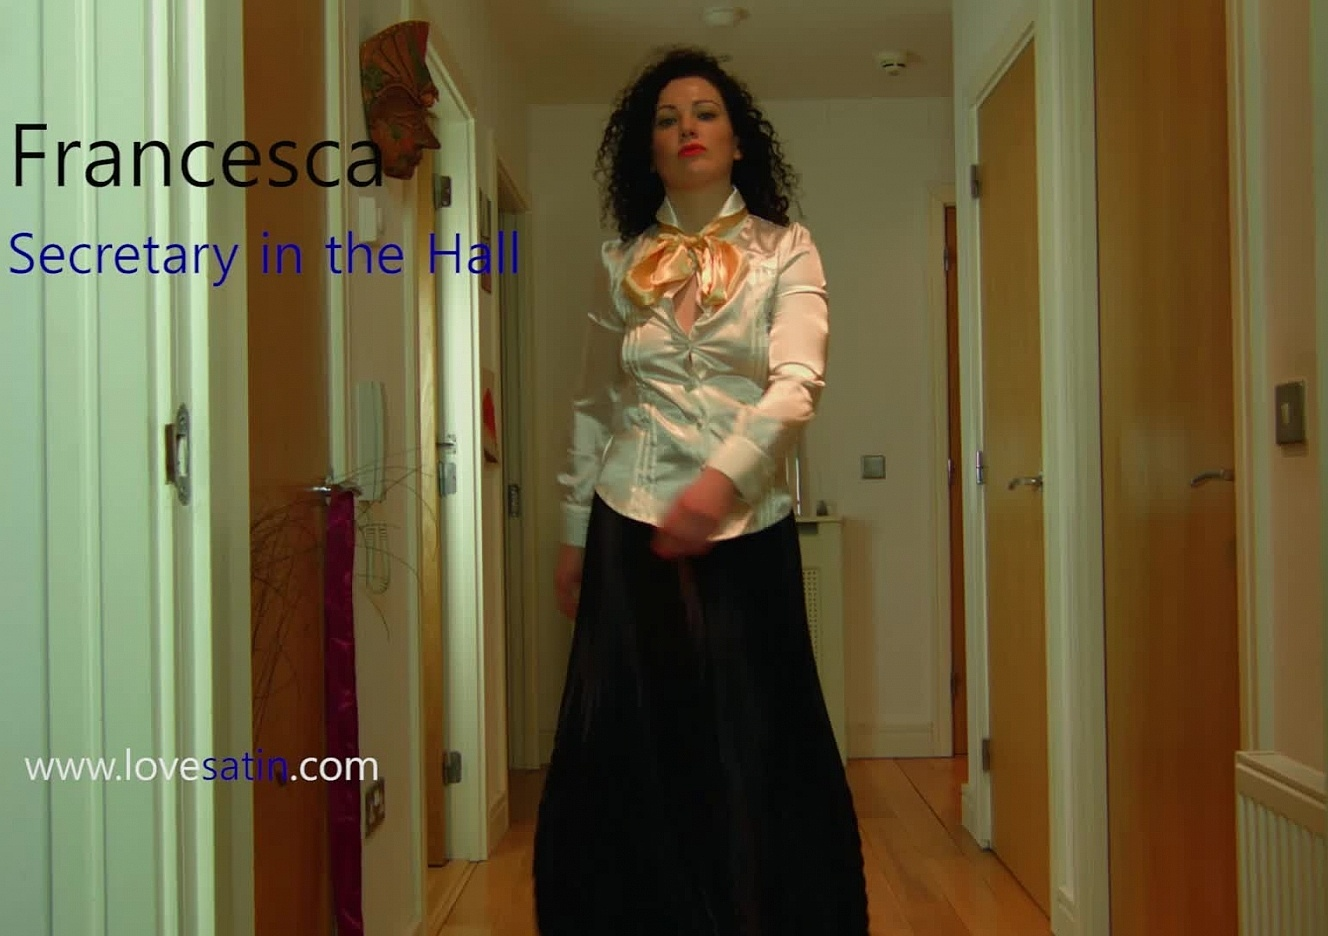 content/Francesca/FRANCESCA-SECRETARY-TEASE-VIDEO/0.jpg